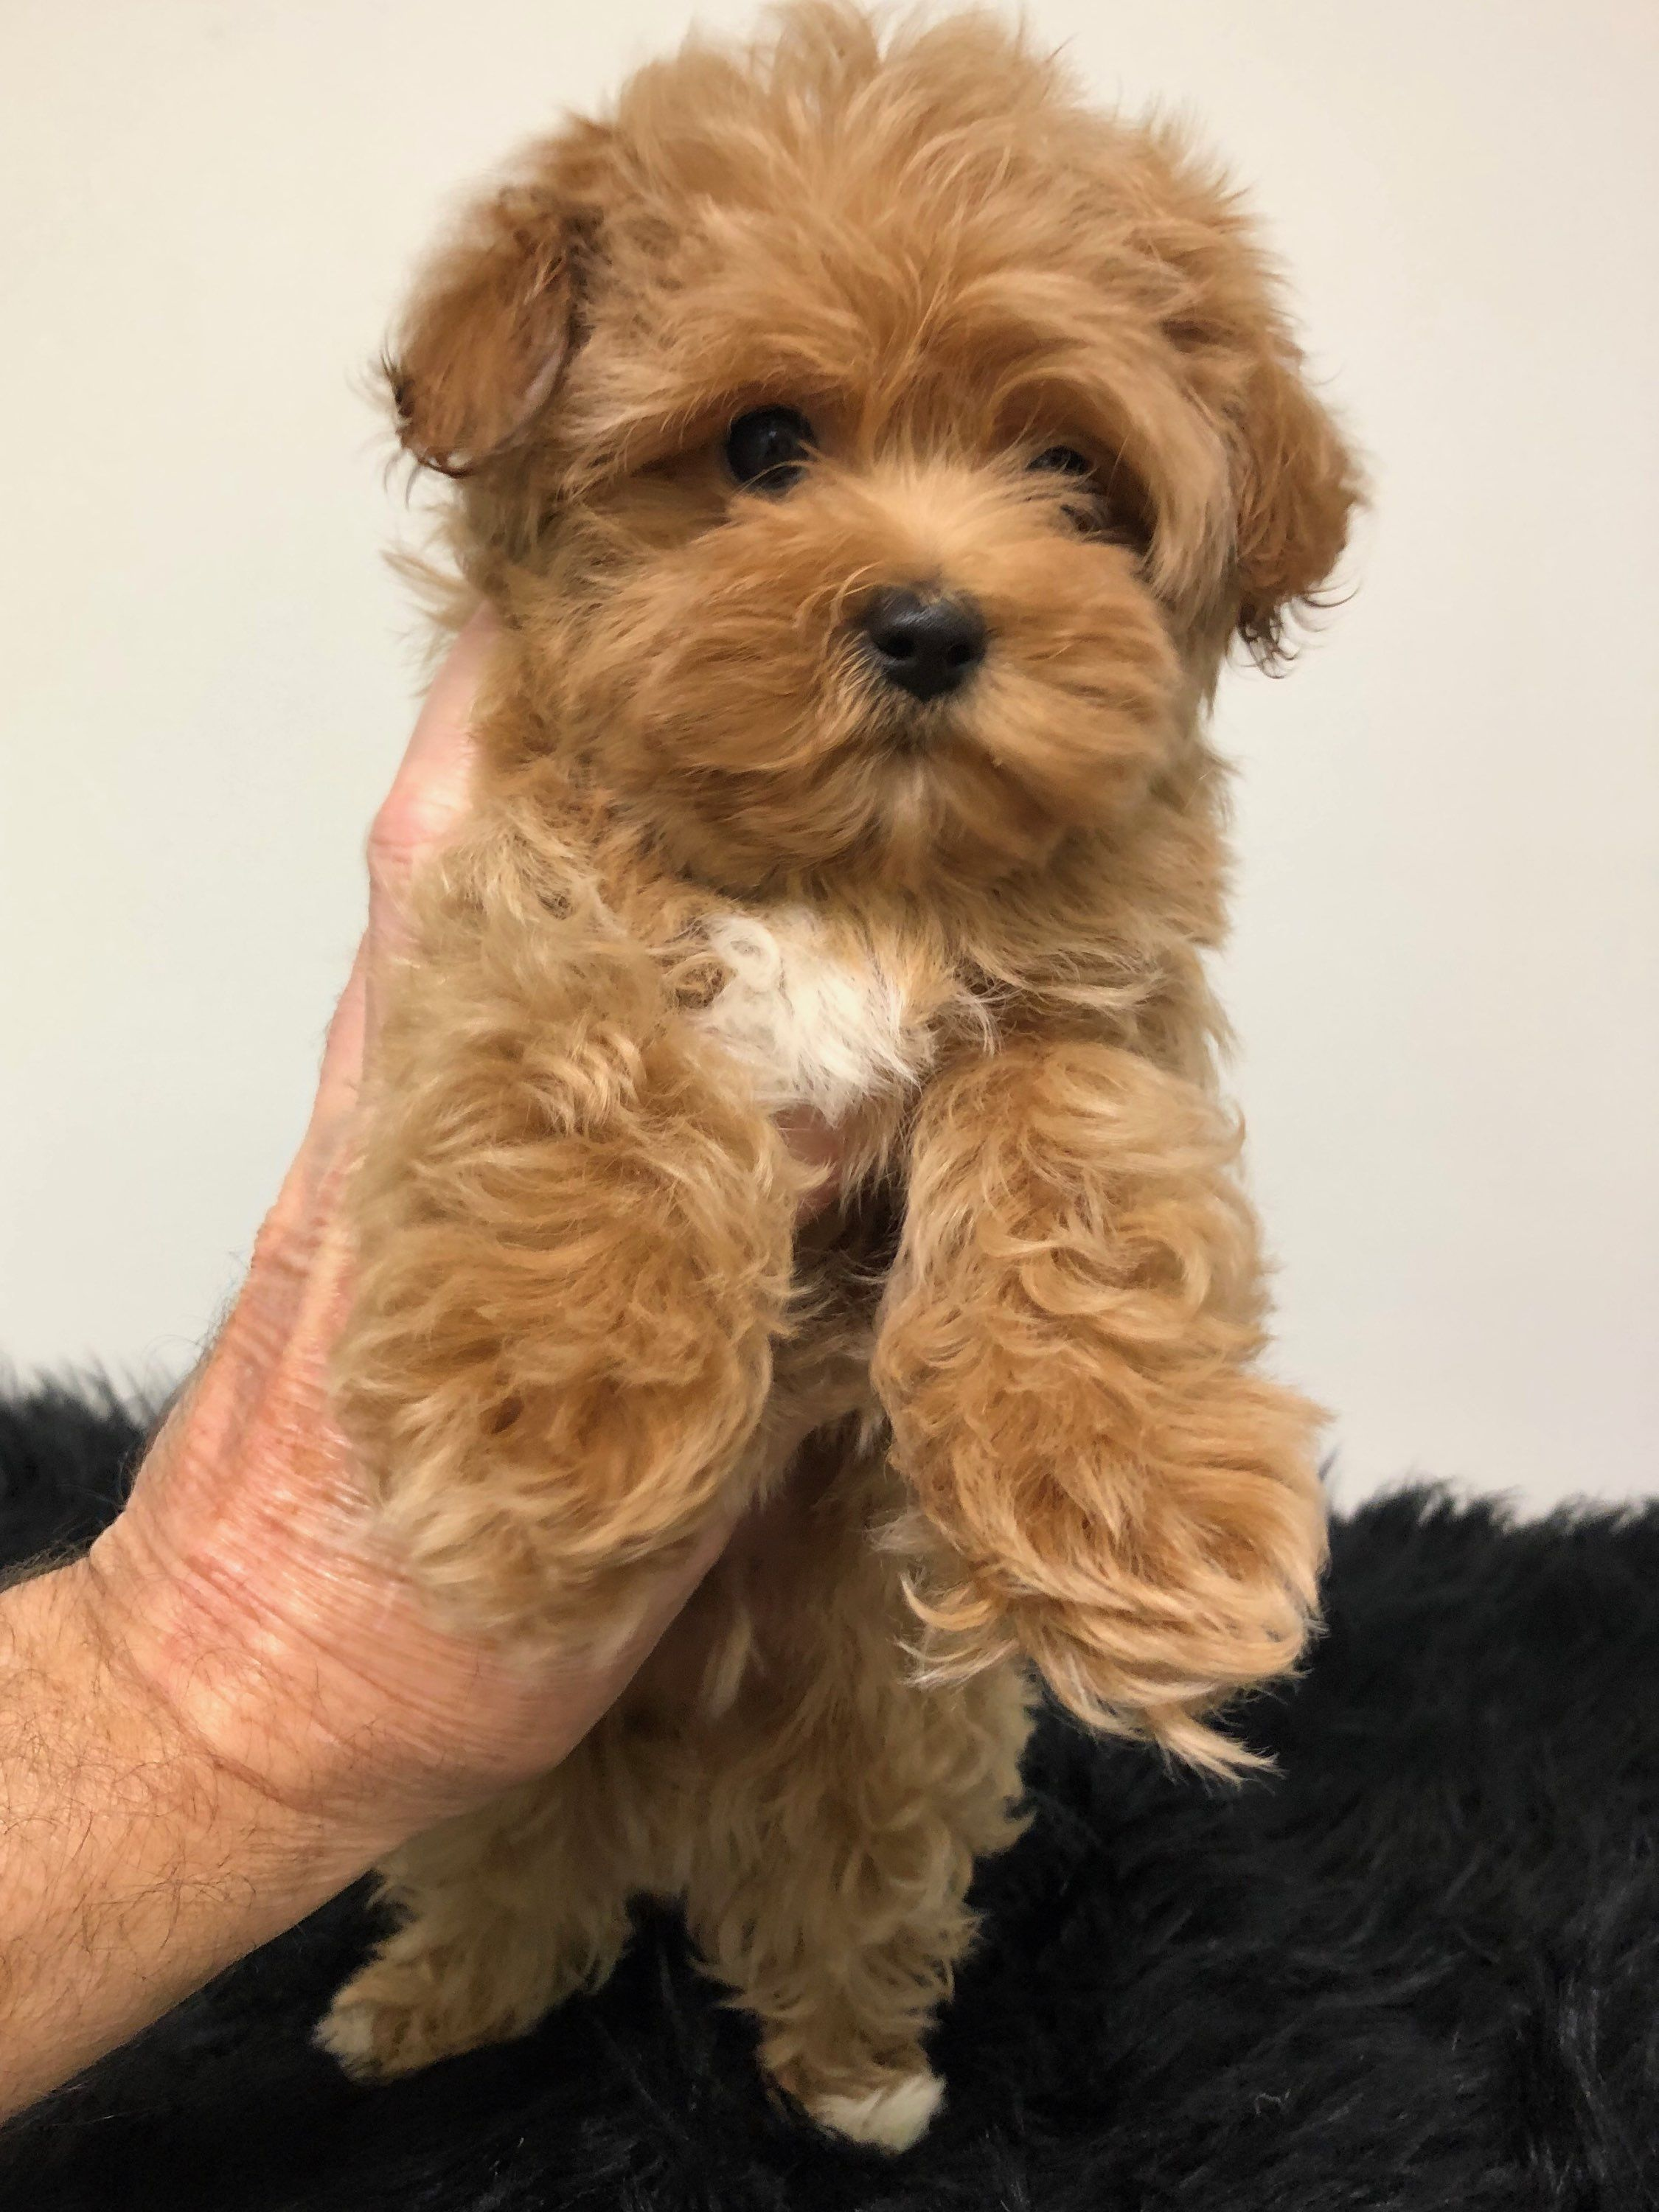 Designer And Mix Puppies Morkies Maltipoos Red Maltipoos Yorkshire Terrier Shih Tzu Havanese Toy And Teacup Poodl Yorkie Poo Yorkie Poo Puppies Shih Poo